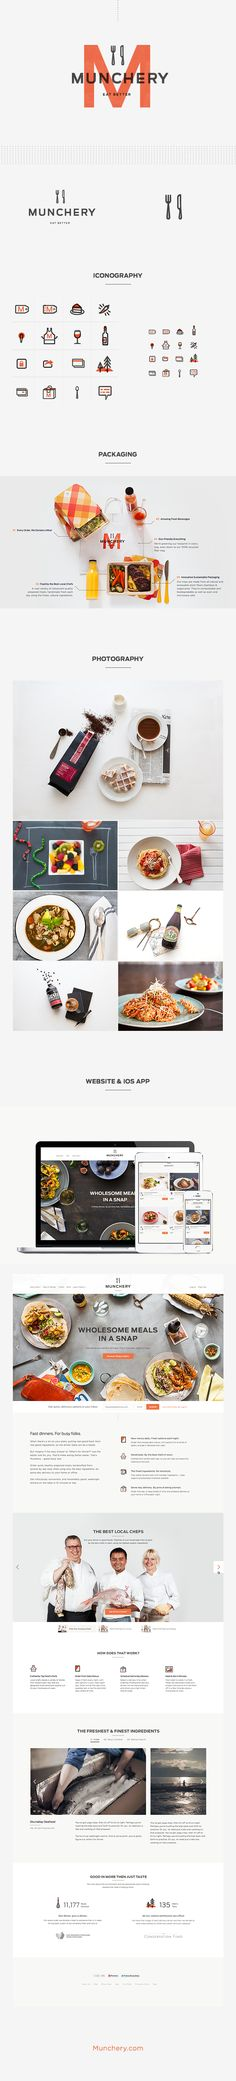 Munchery redesign with branding guidelines.